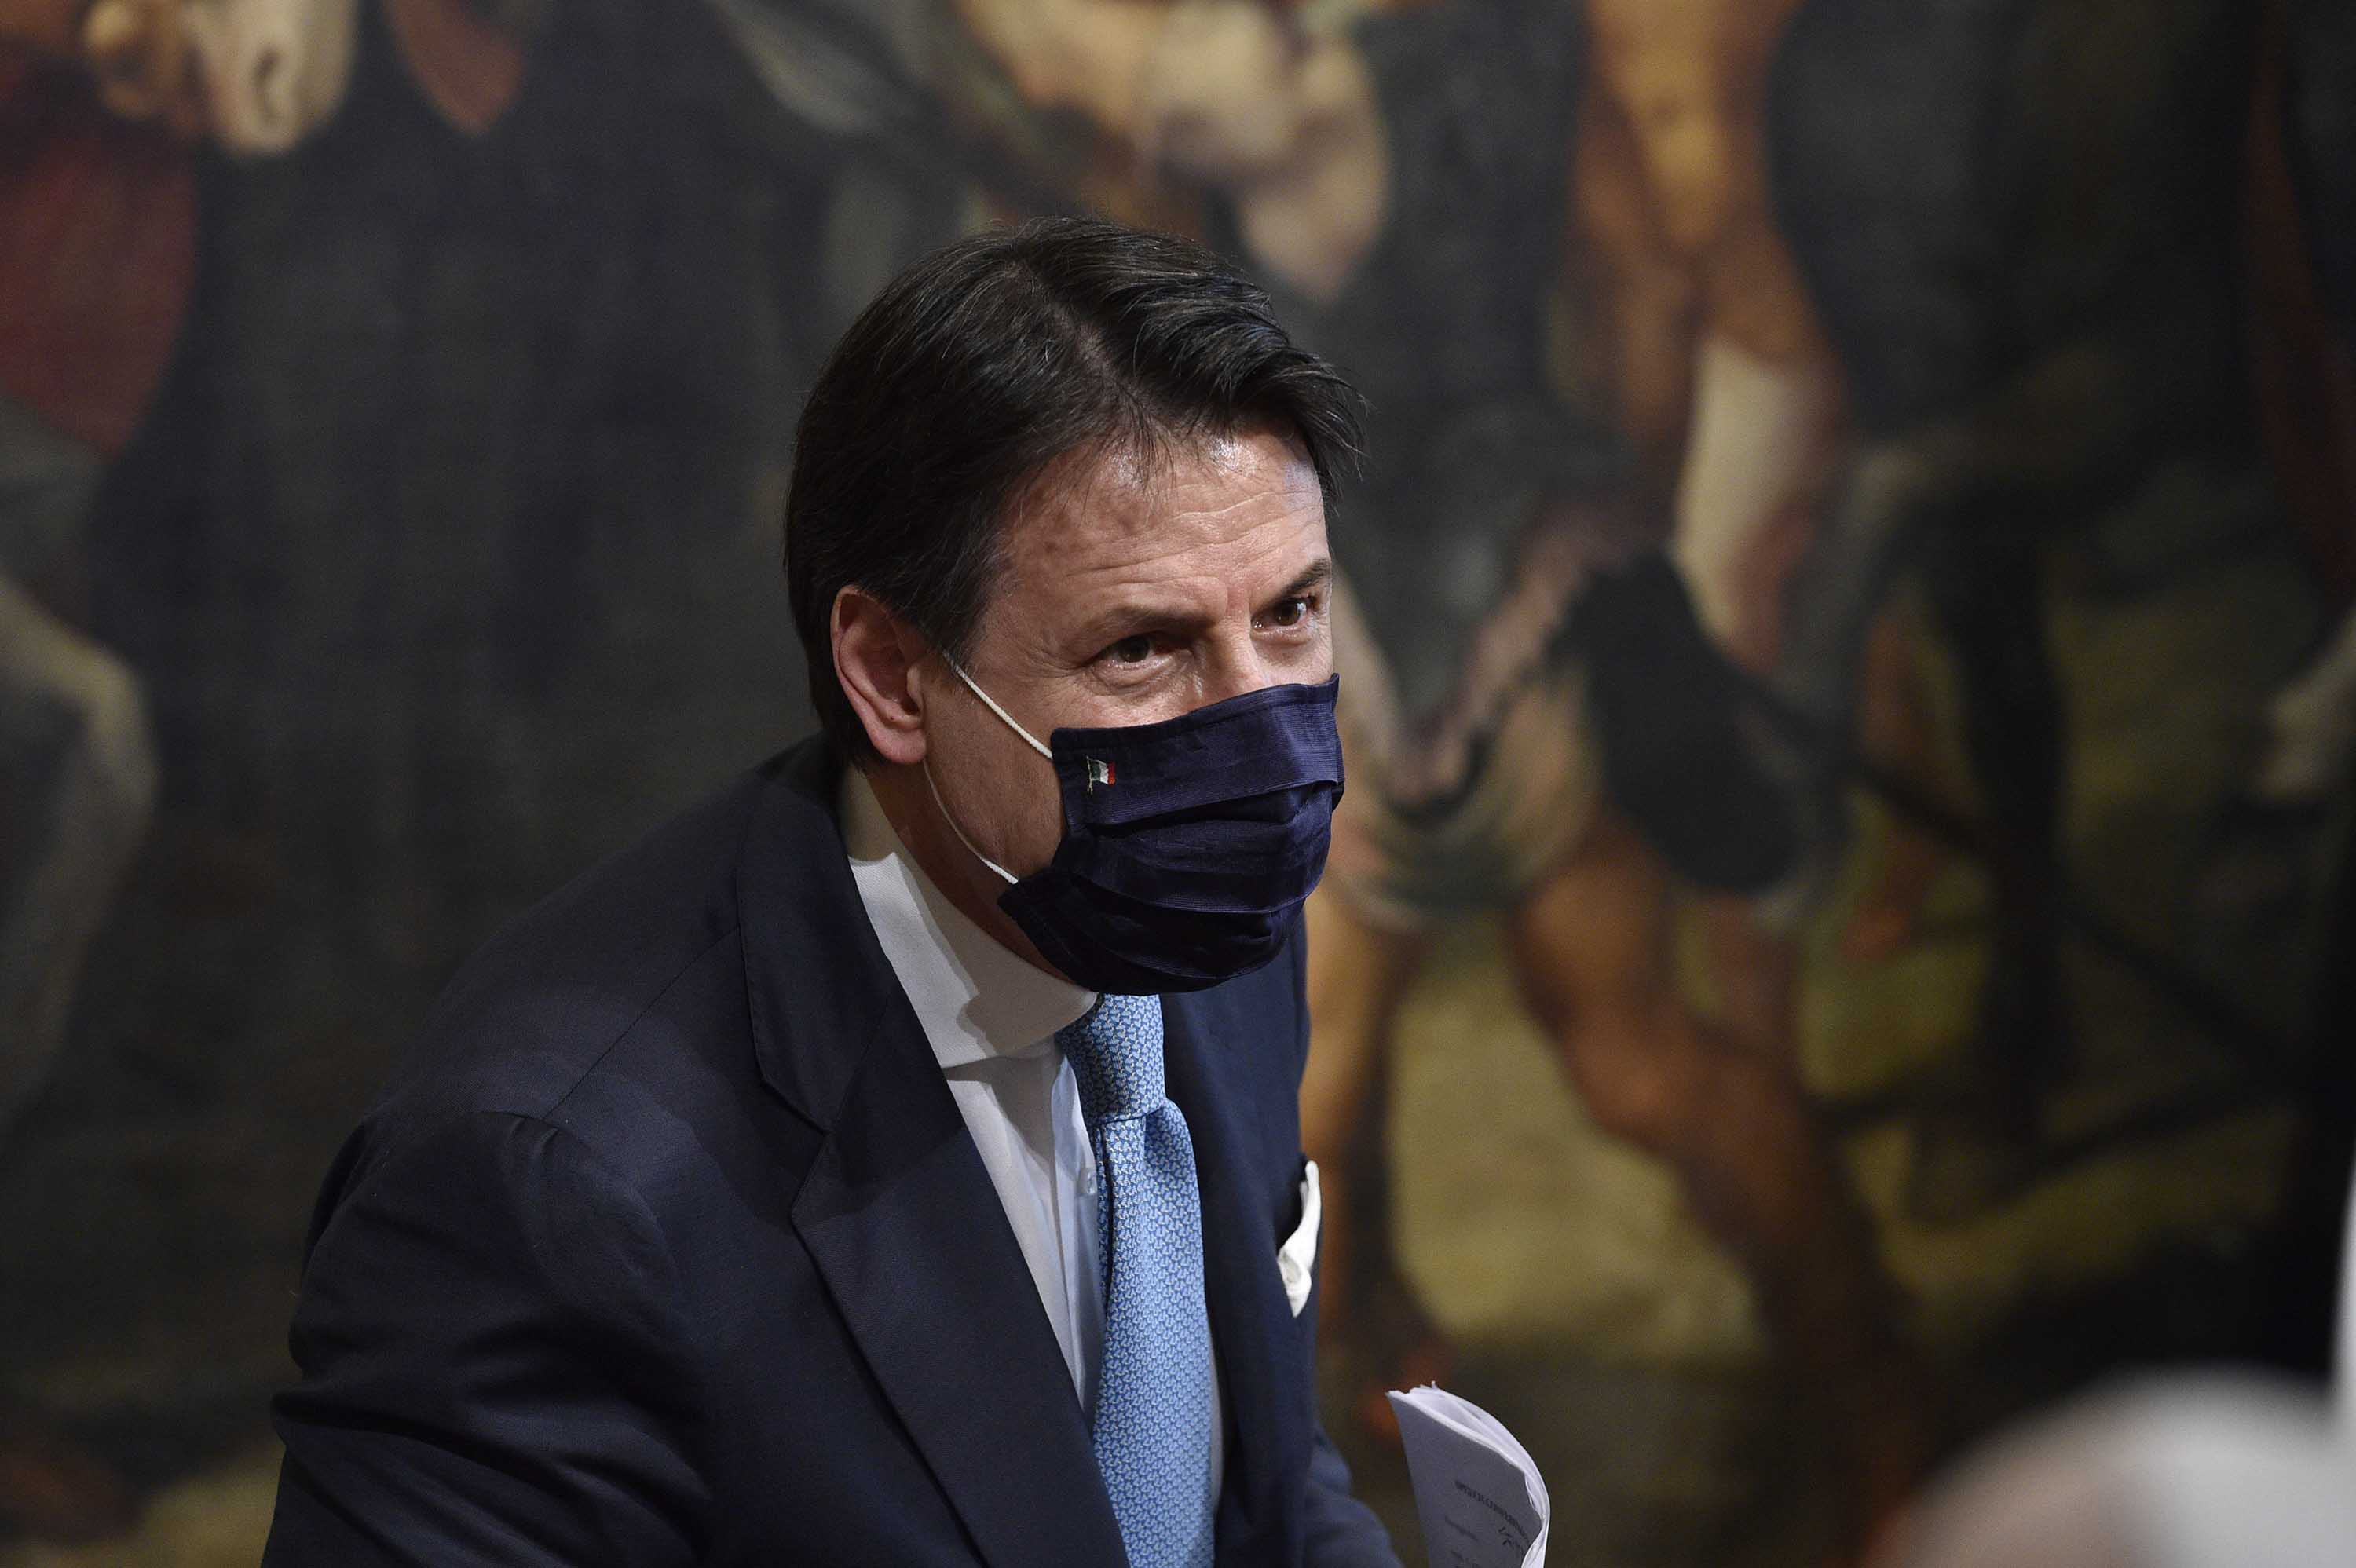 Italian Prime Minister Giuseppe Conte holds a press conference in Rome, Italy, on July 7.